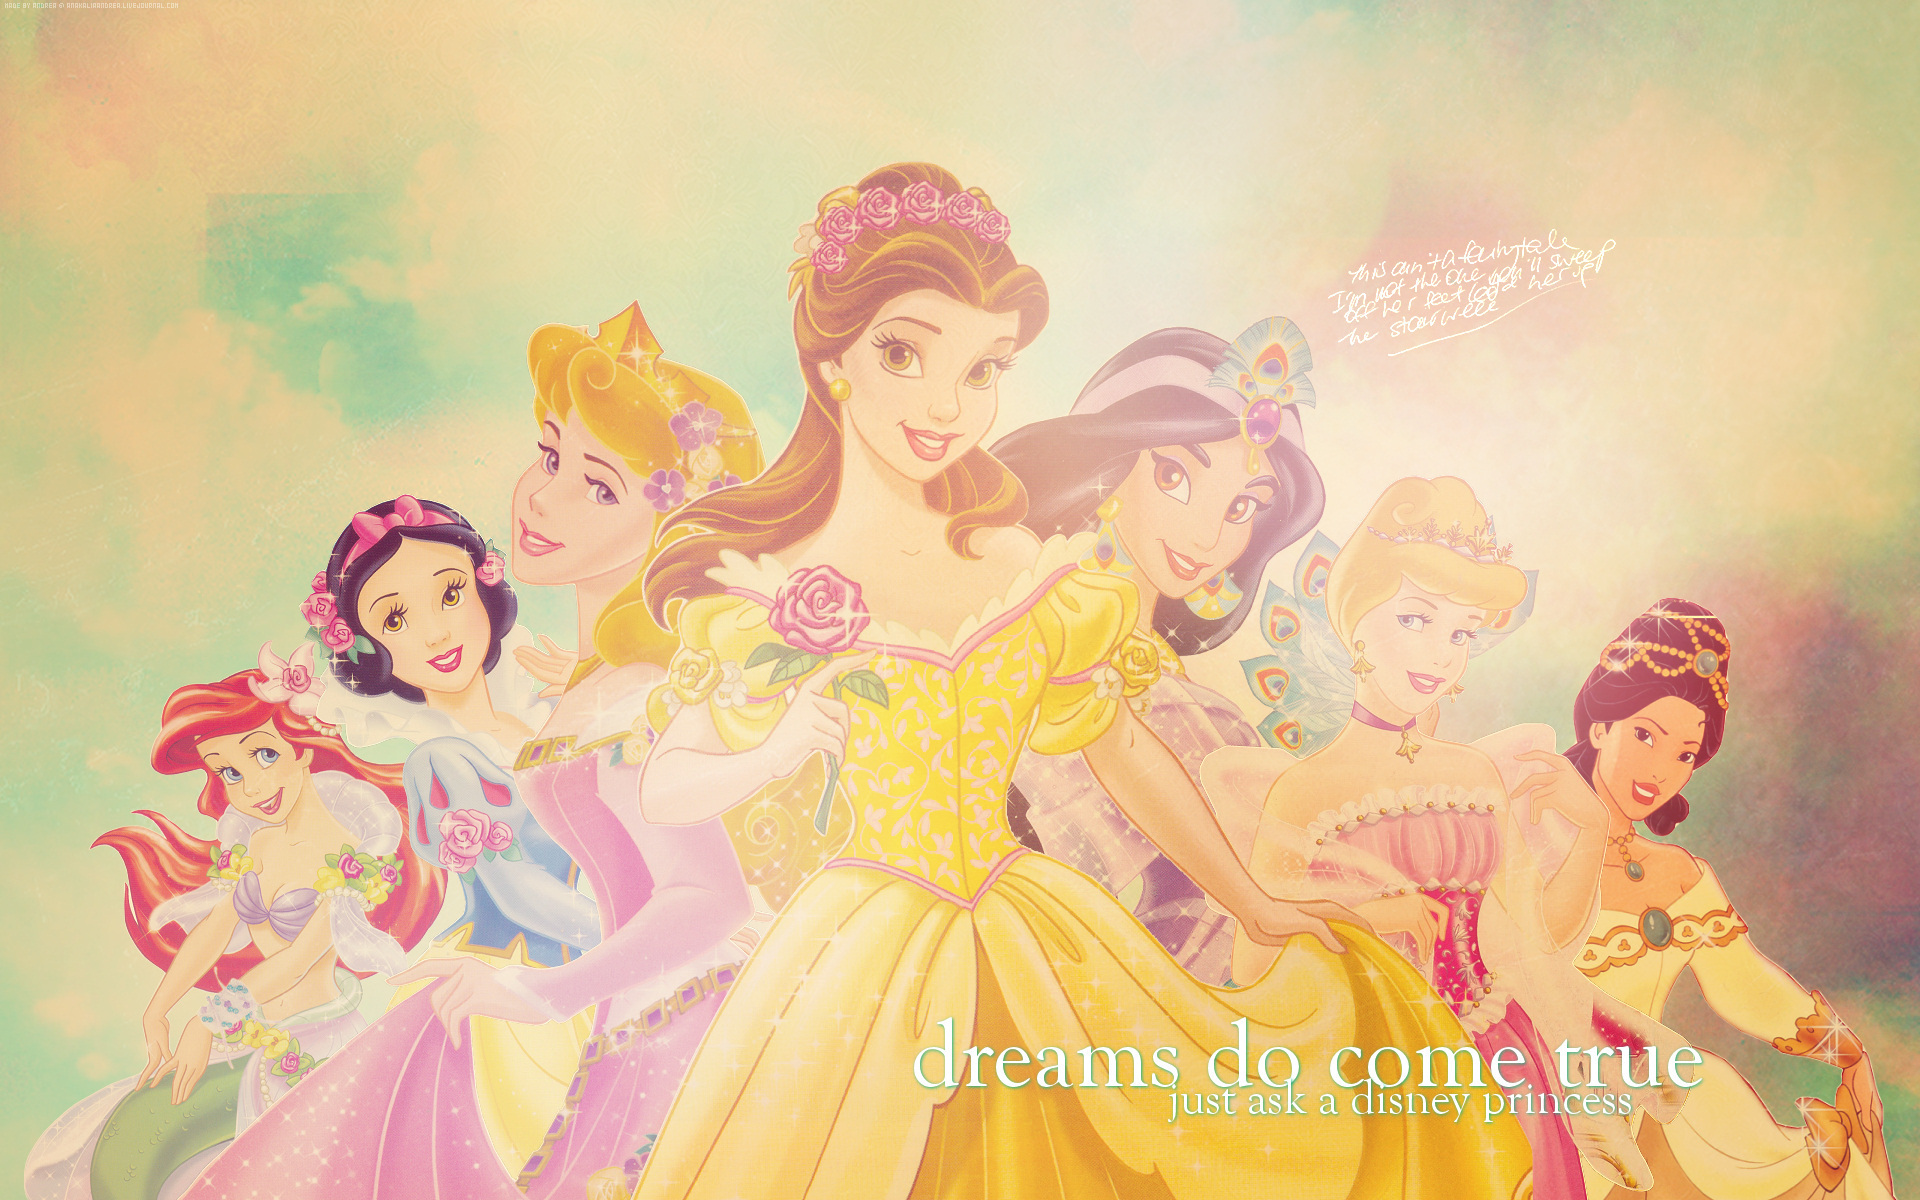 Disney com princess castle backgrounds disney princesses html code - Disney Princess Wallpaper 0 Html Code Disney Princesses Disney Princess Wallpaper 7250269 Fanpop